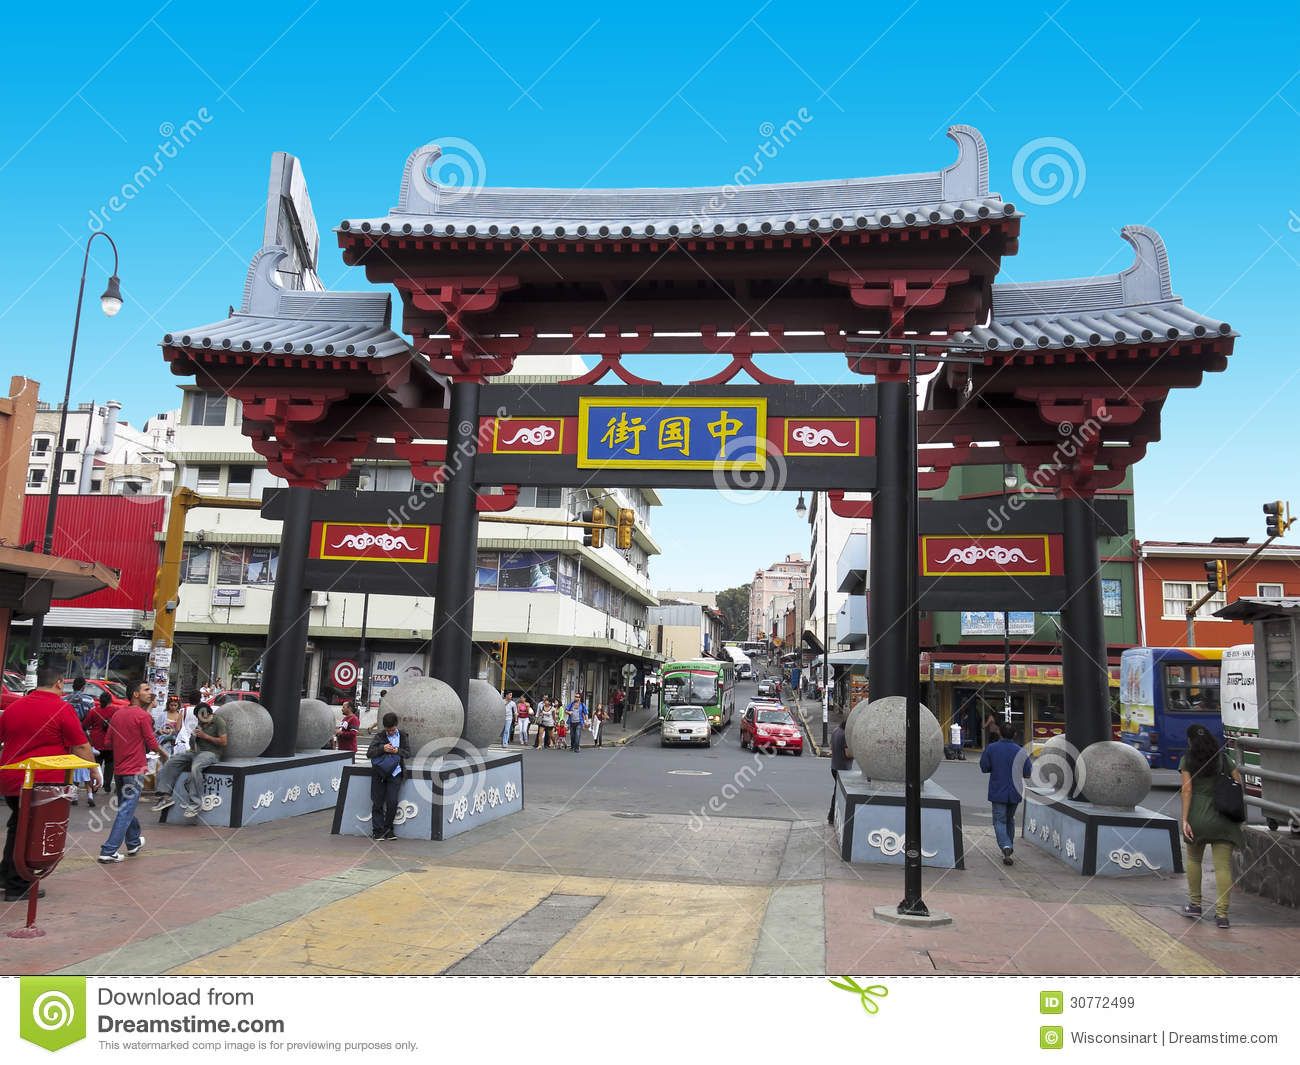 China Town Entrance in San Jose, Costa Rica, Travel